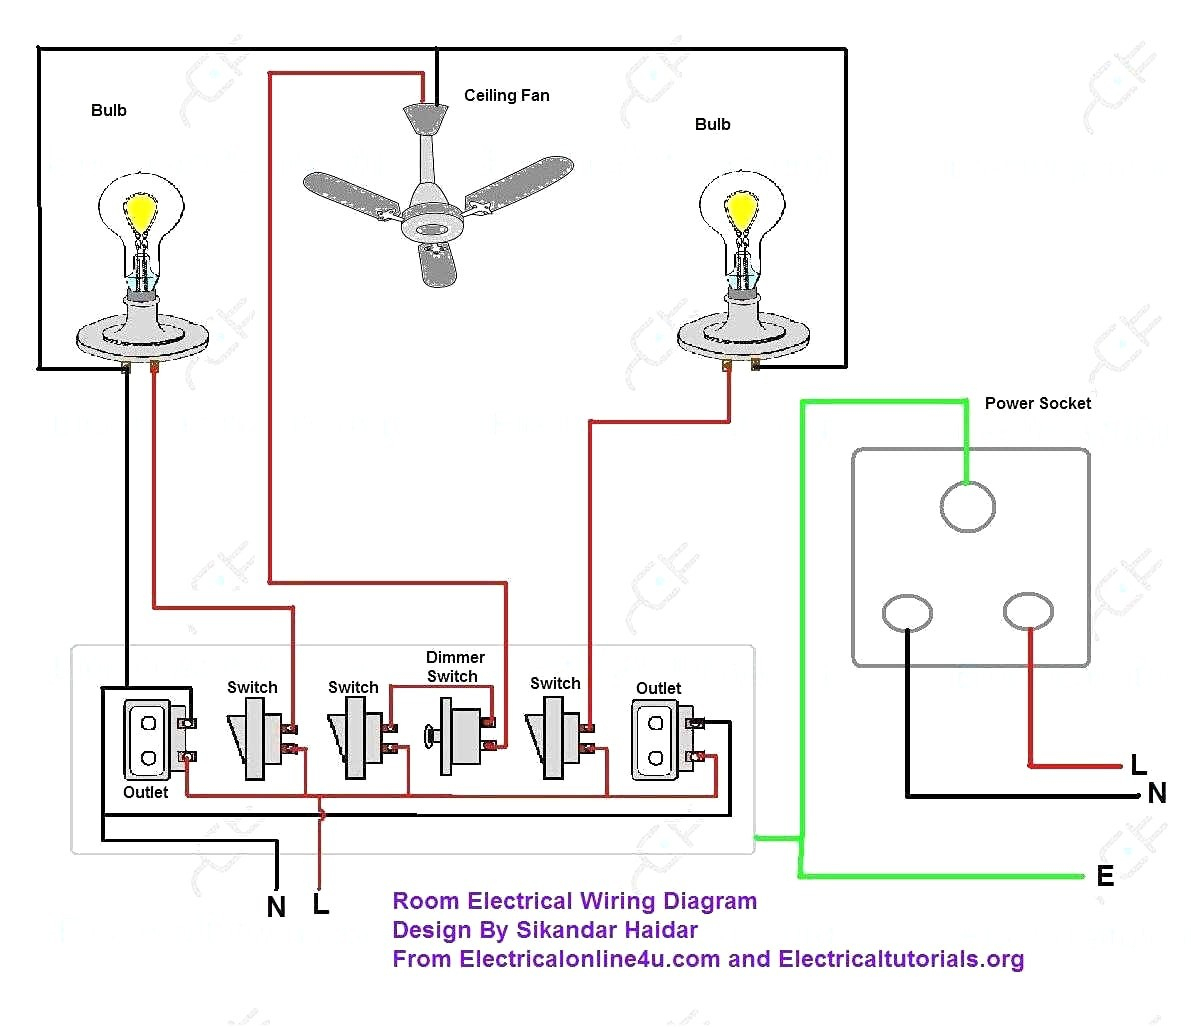 Electric Heater Wiring Diagram   Wirings Diagram on heater thermostat diagram, heater hoses diagram, thermo king reefer unit diagram, plc input and output diagram, heater pump diagram, wiper motor diagram, heater control diagram, solar panel inverter circuit diagram, tankless water heater diagram, reddy heater parts diagram, doorbell wire connection diagram, home heating diagram, transmission diagram, heater circuit diagram, thermo king tripac apu diagram, voltage regulator diagram, heater coil diagram, water heater installation diagram, heater radiator, doorbell installation diagram,